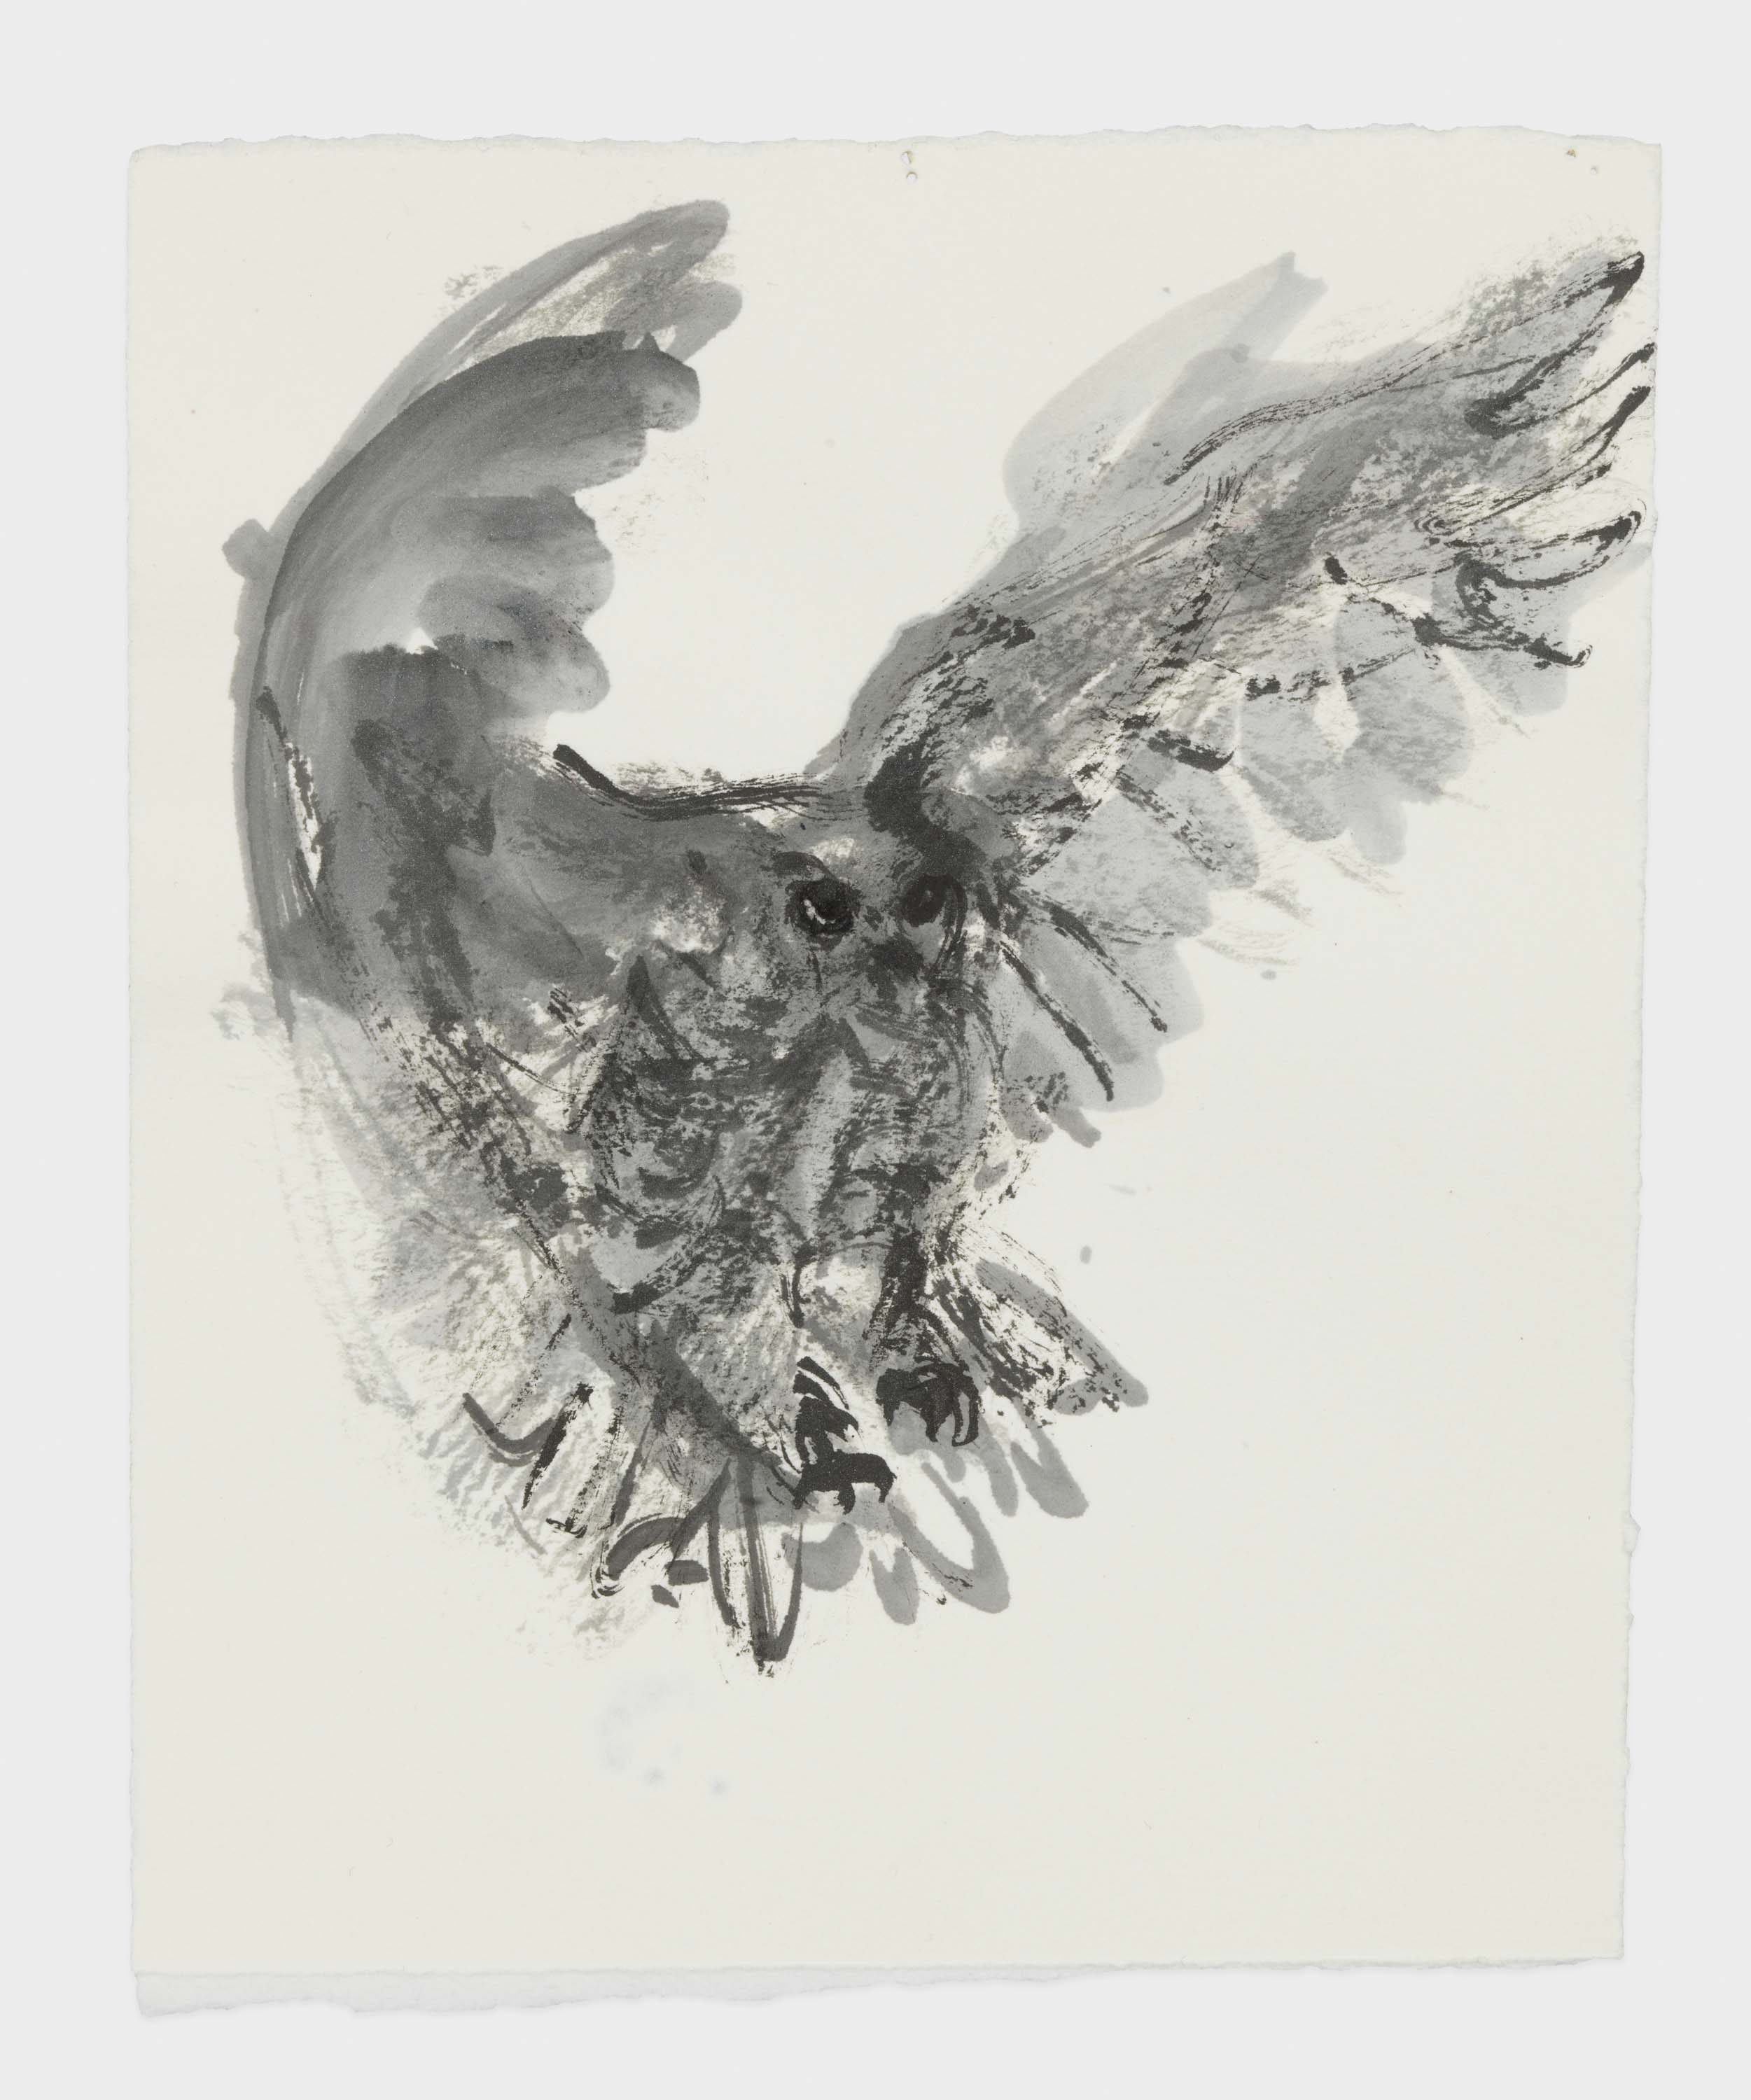 "Marlene Dumas, ""The owl"", 2015-2016, Ink wash and metallic acrylic on paper, 6 7/8 x 5 3/4 inches 17.5 x 14.6 cm. Exposition ""Myths & Mortals"", Galerie David Zwirner, New-York"